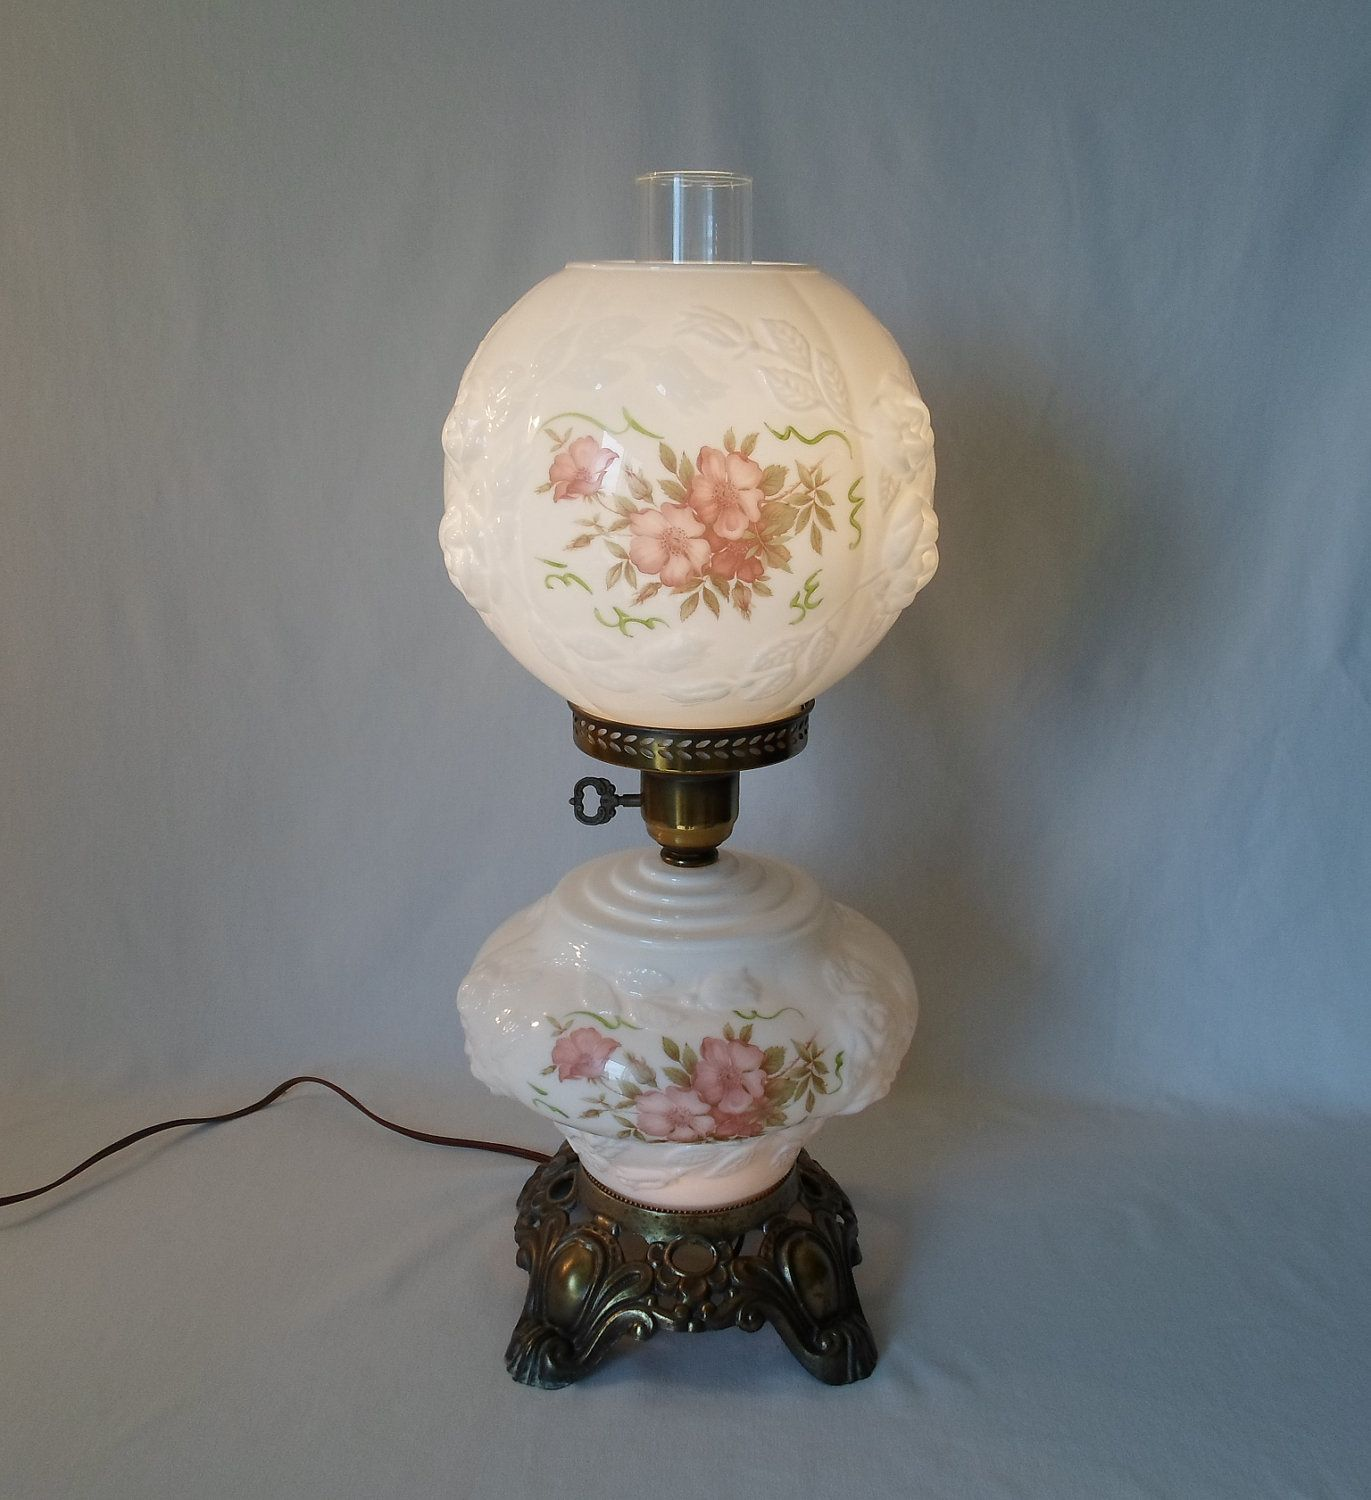 Antique Lamps Rose Print Globe Vintage Gone With The Wind Lamp Hurricane Hand Painted Wild